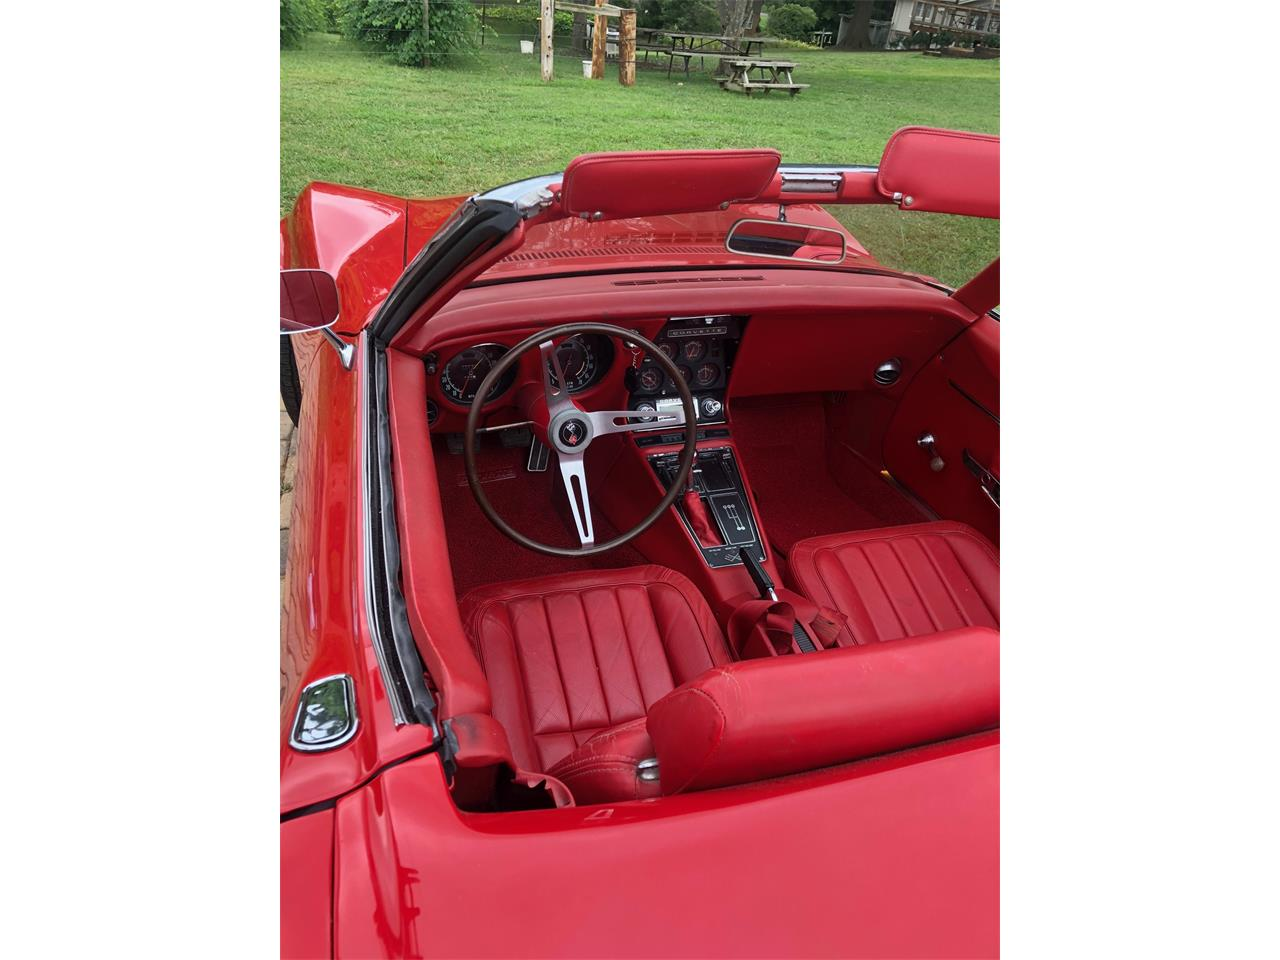 Large Picture of Classic 1968 Corvette located in Monroe North Carolina - $30,000.00 Offered by a Private Seller - QH2G